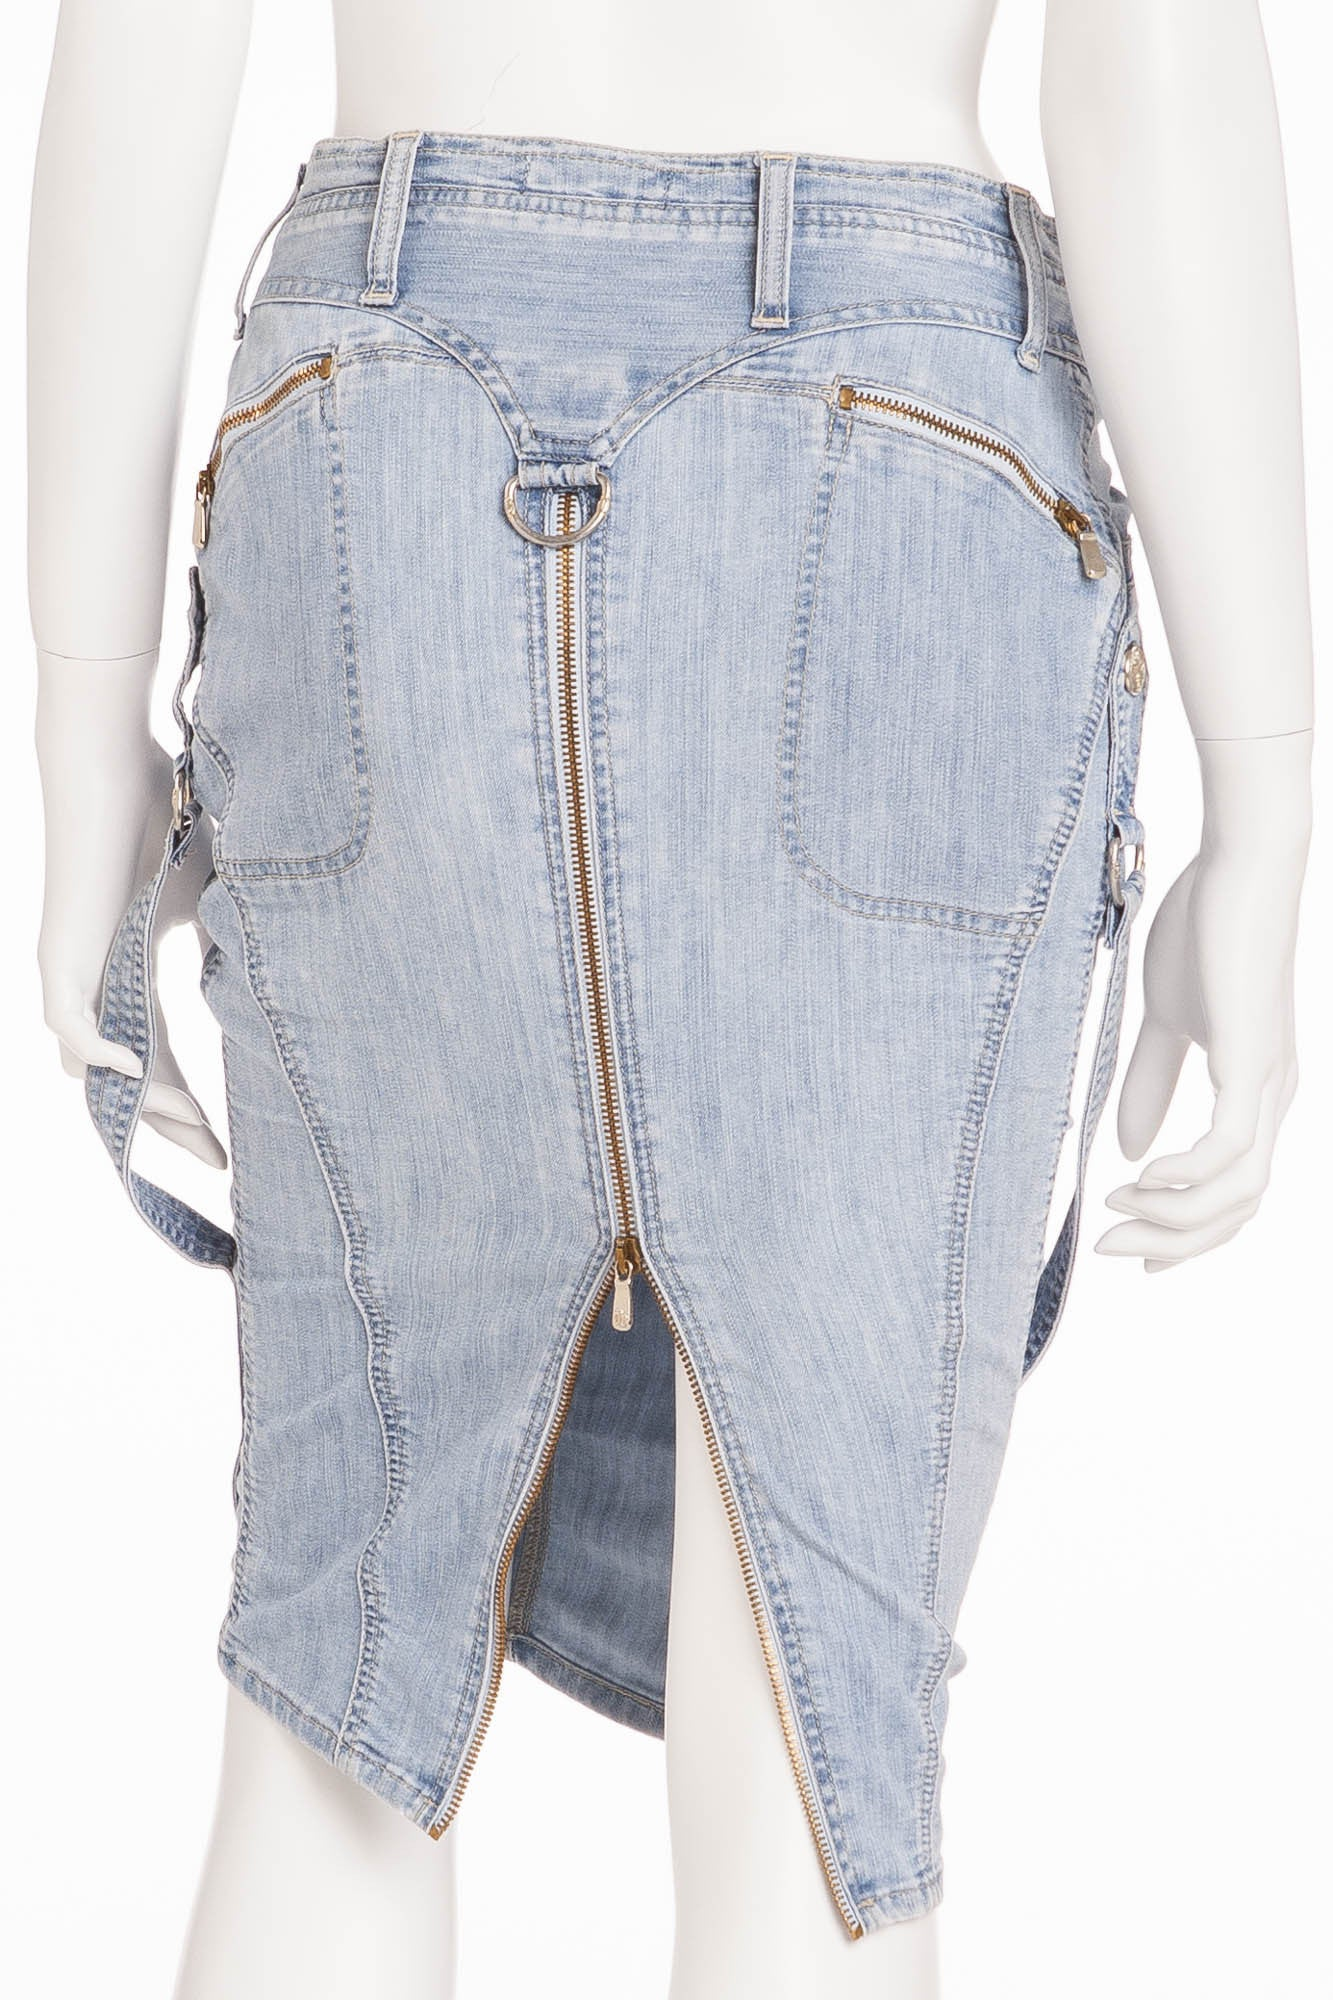 1d7f044f2 Versace - Denim Pencil Skirt with Zippers - – LUXHAVE